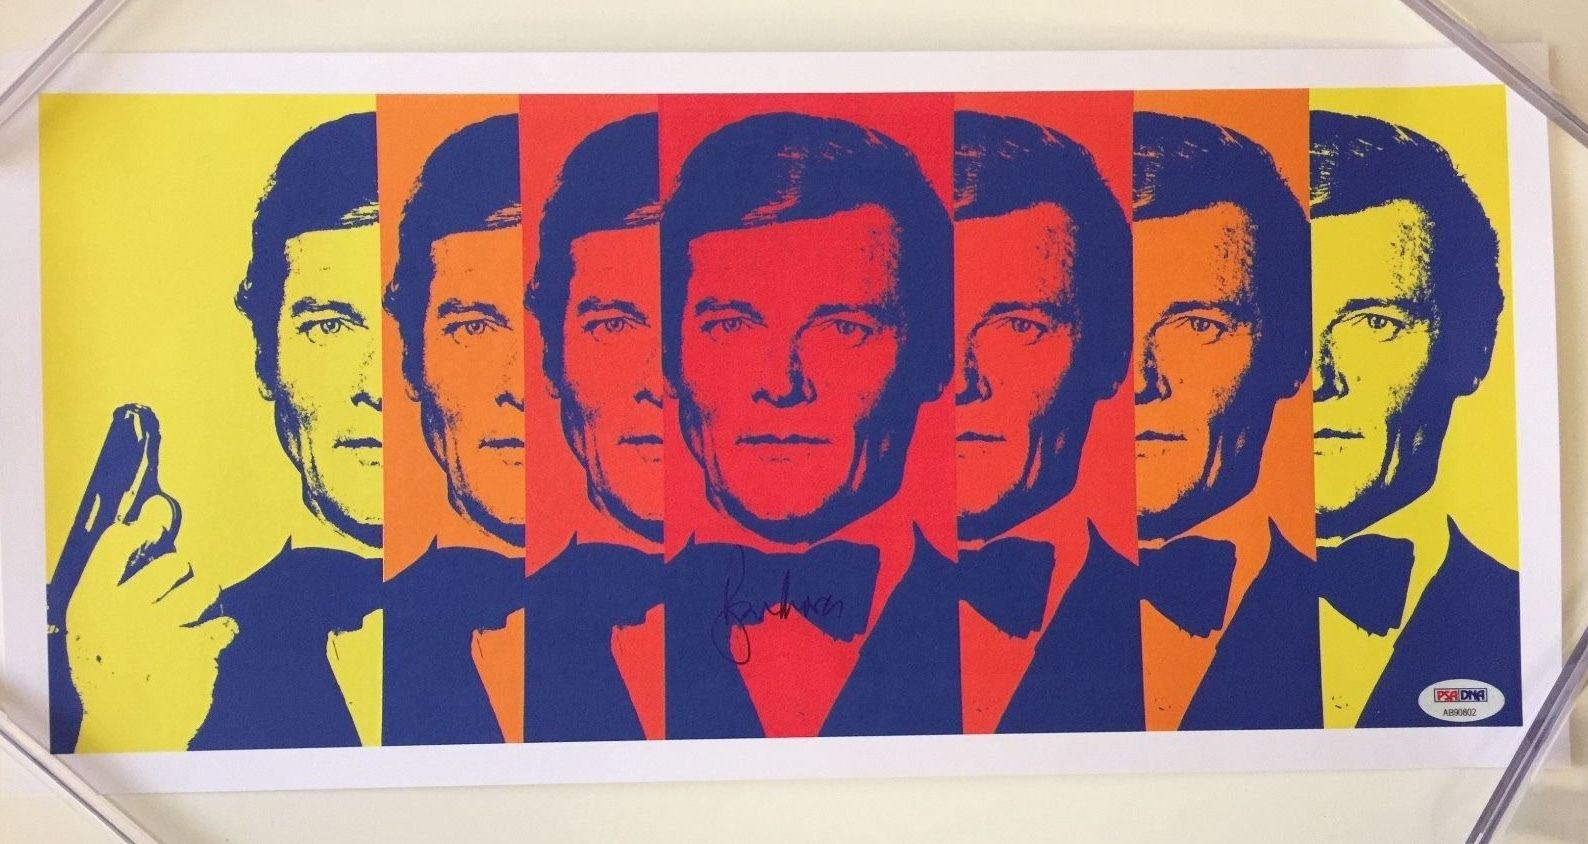 Sir ROGER MOORE Signed JAMES BOND Lithograph Print 9x18 PSA/DNA COA Pic Proof